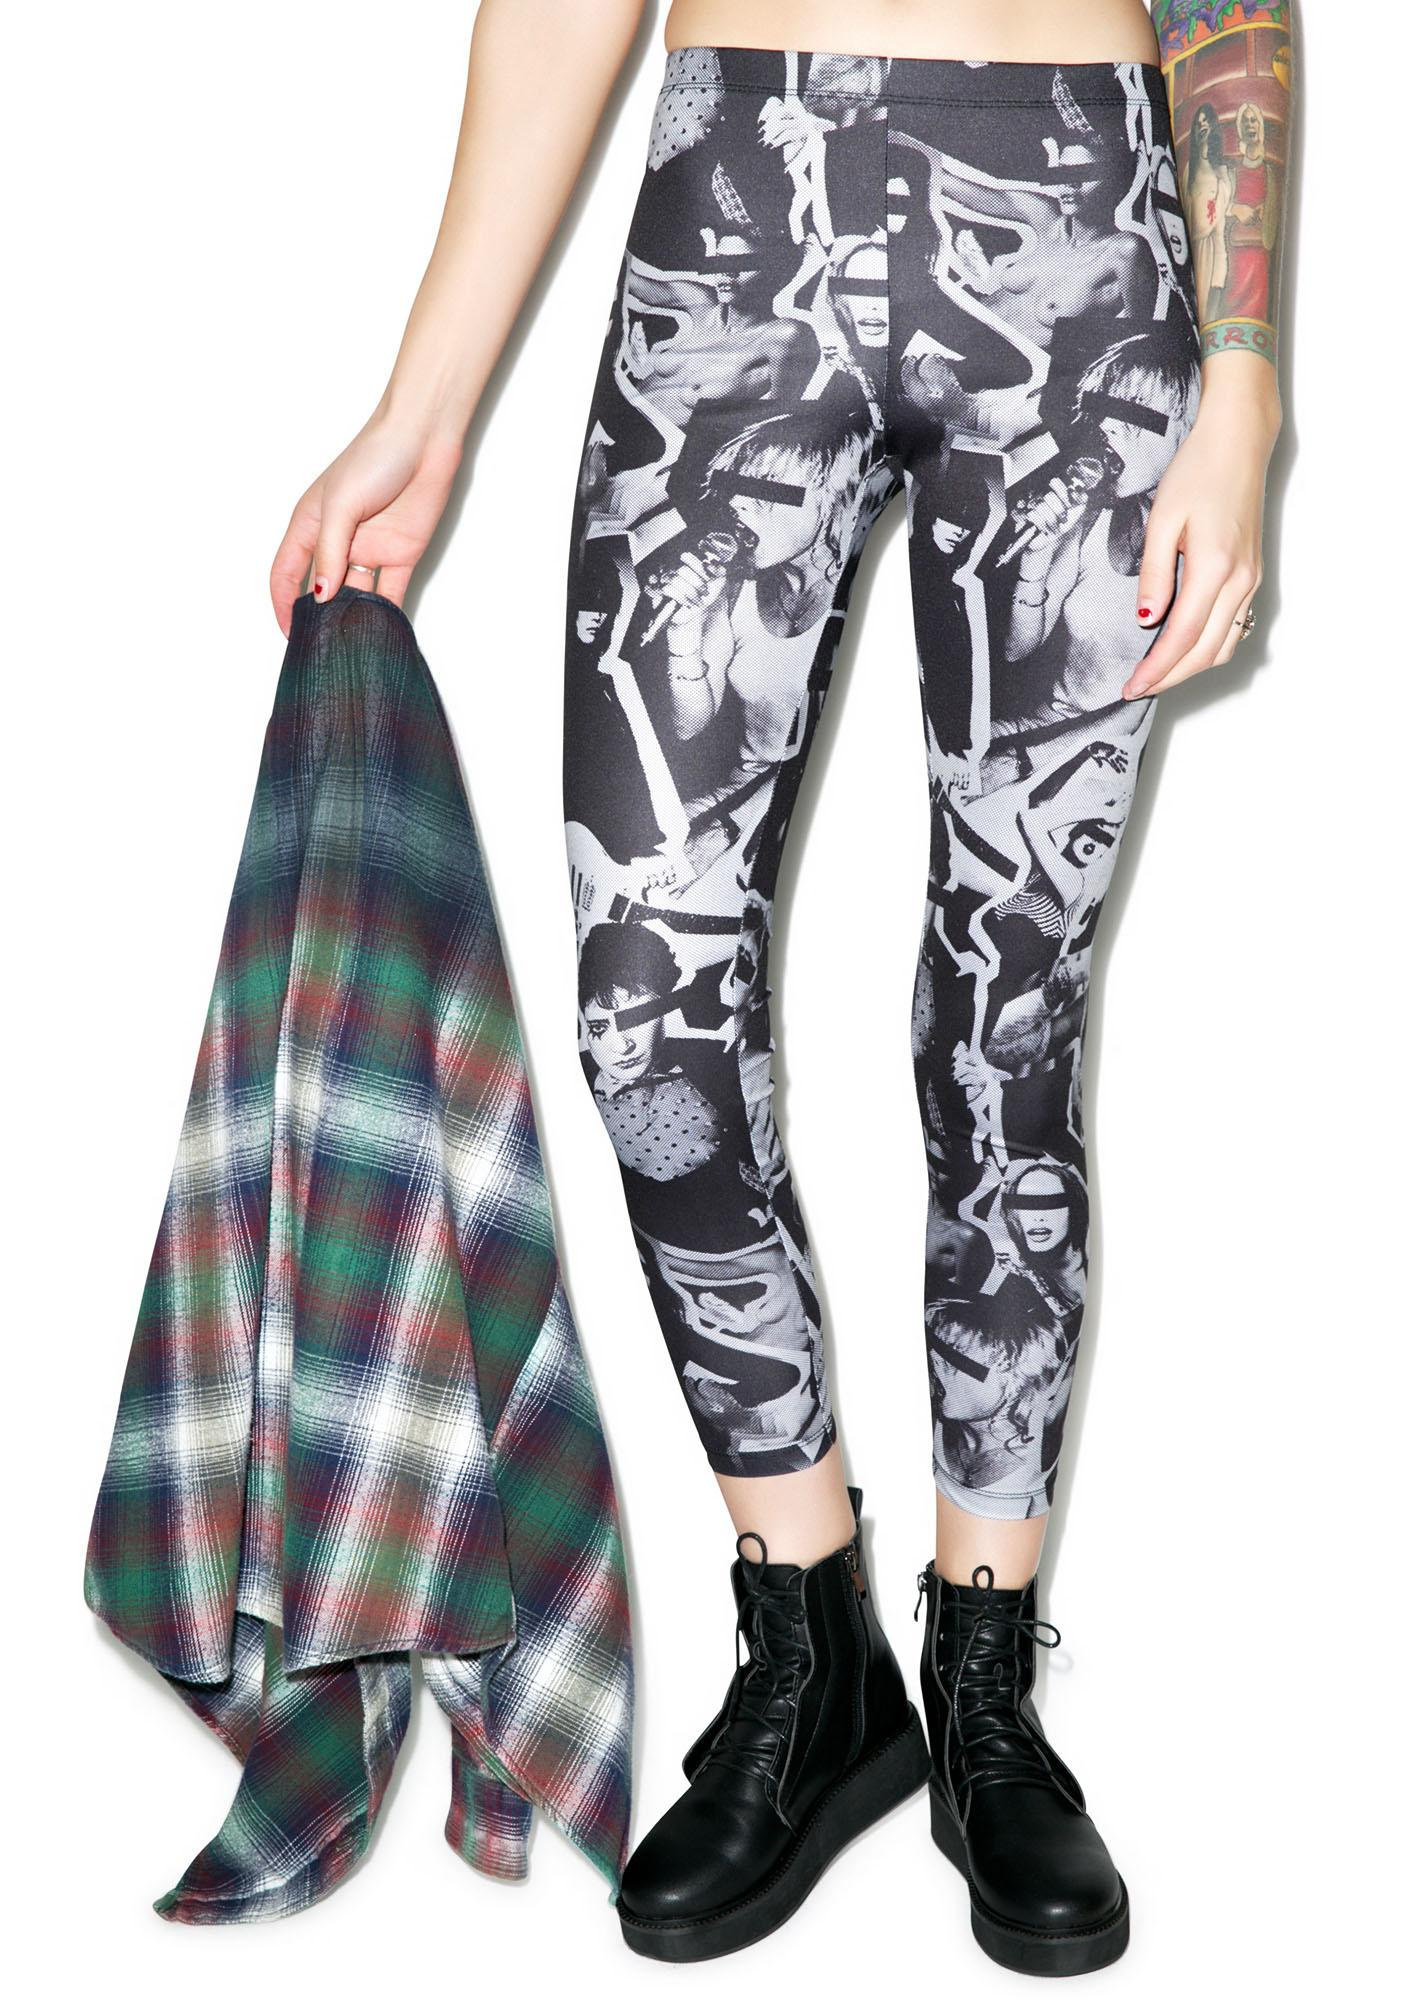 HLZBLZ Hellz Babes Leggings